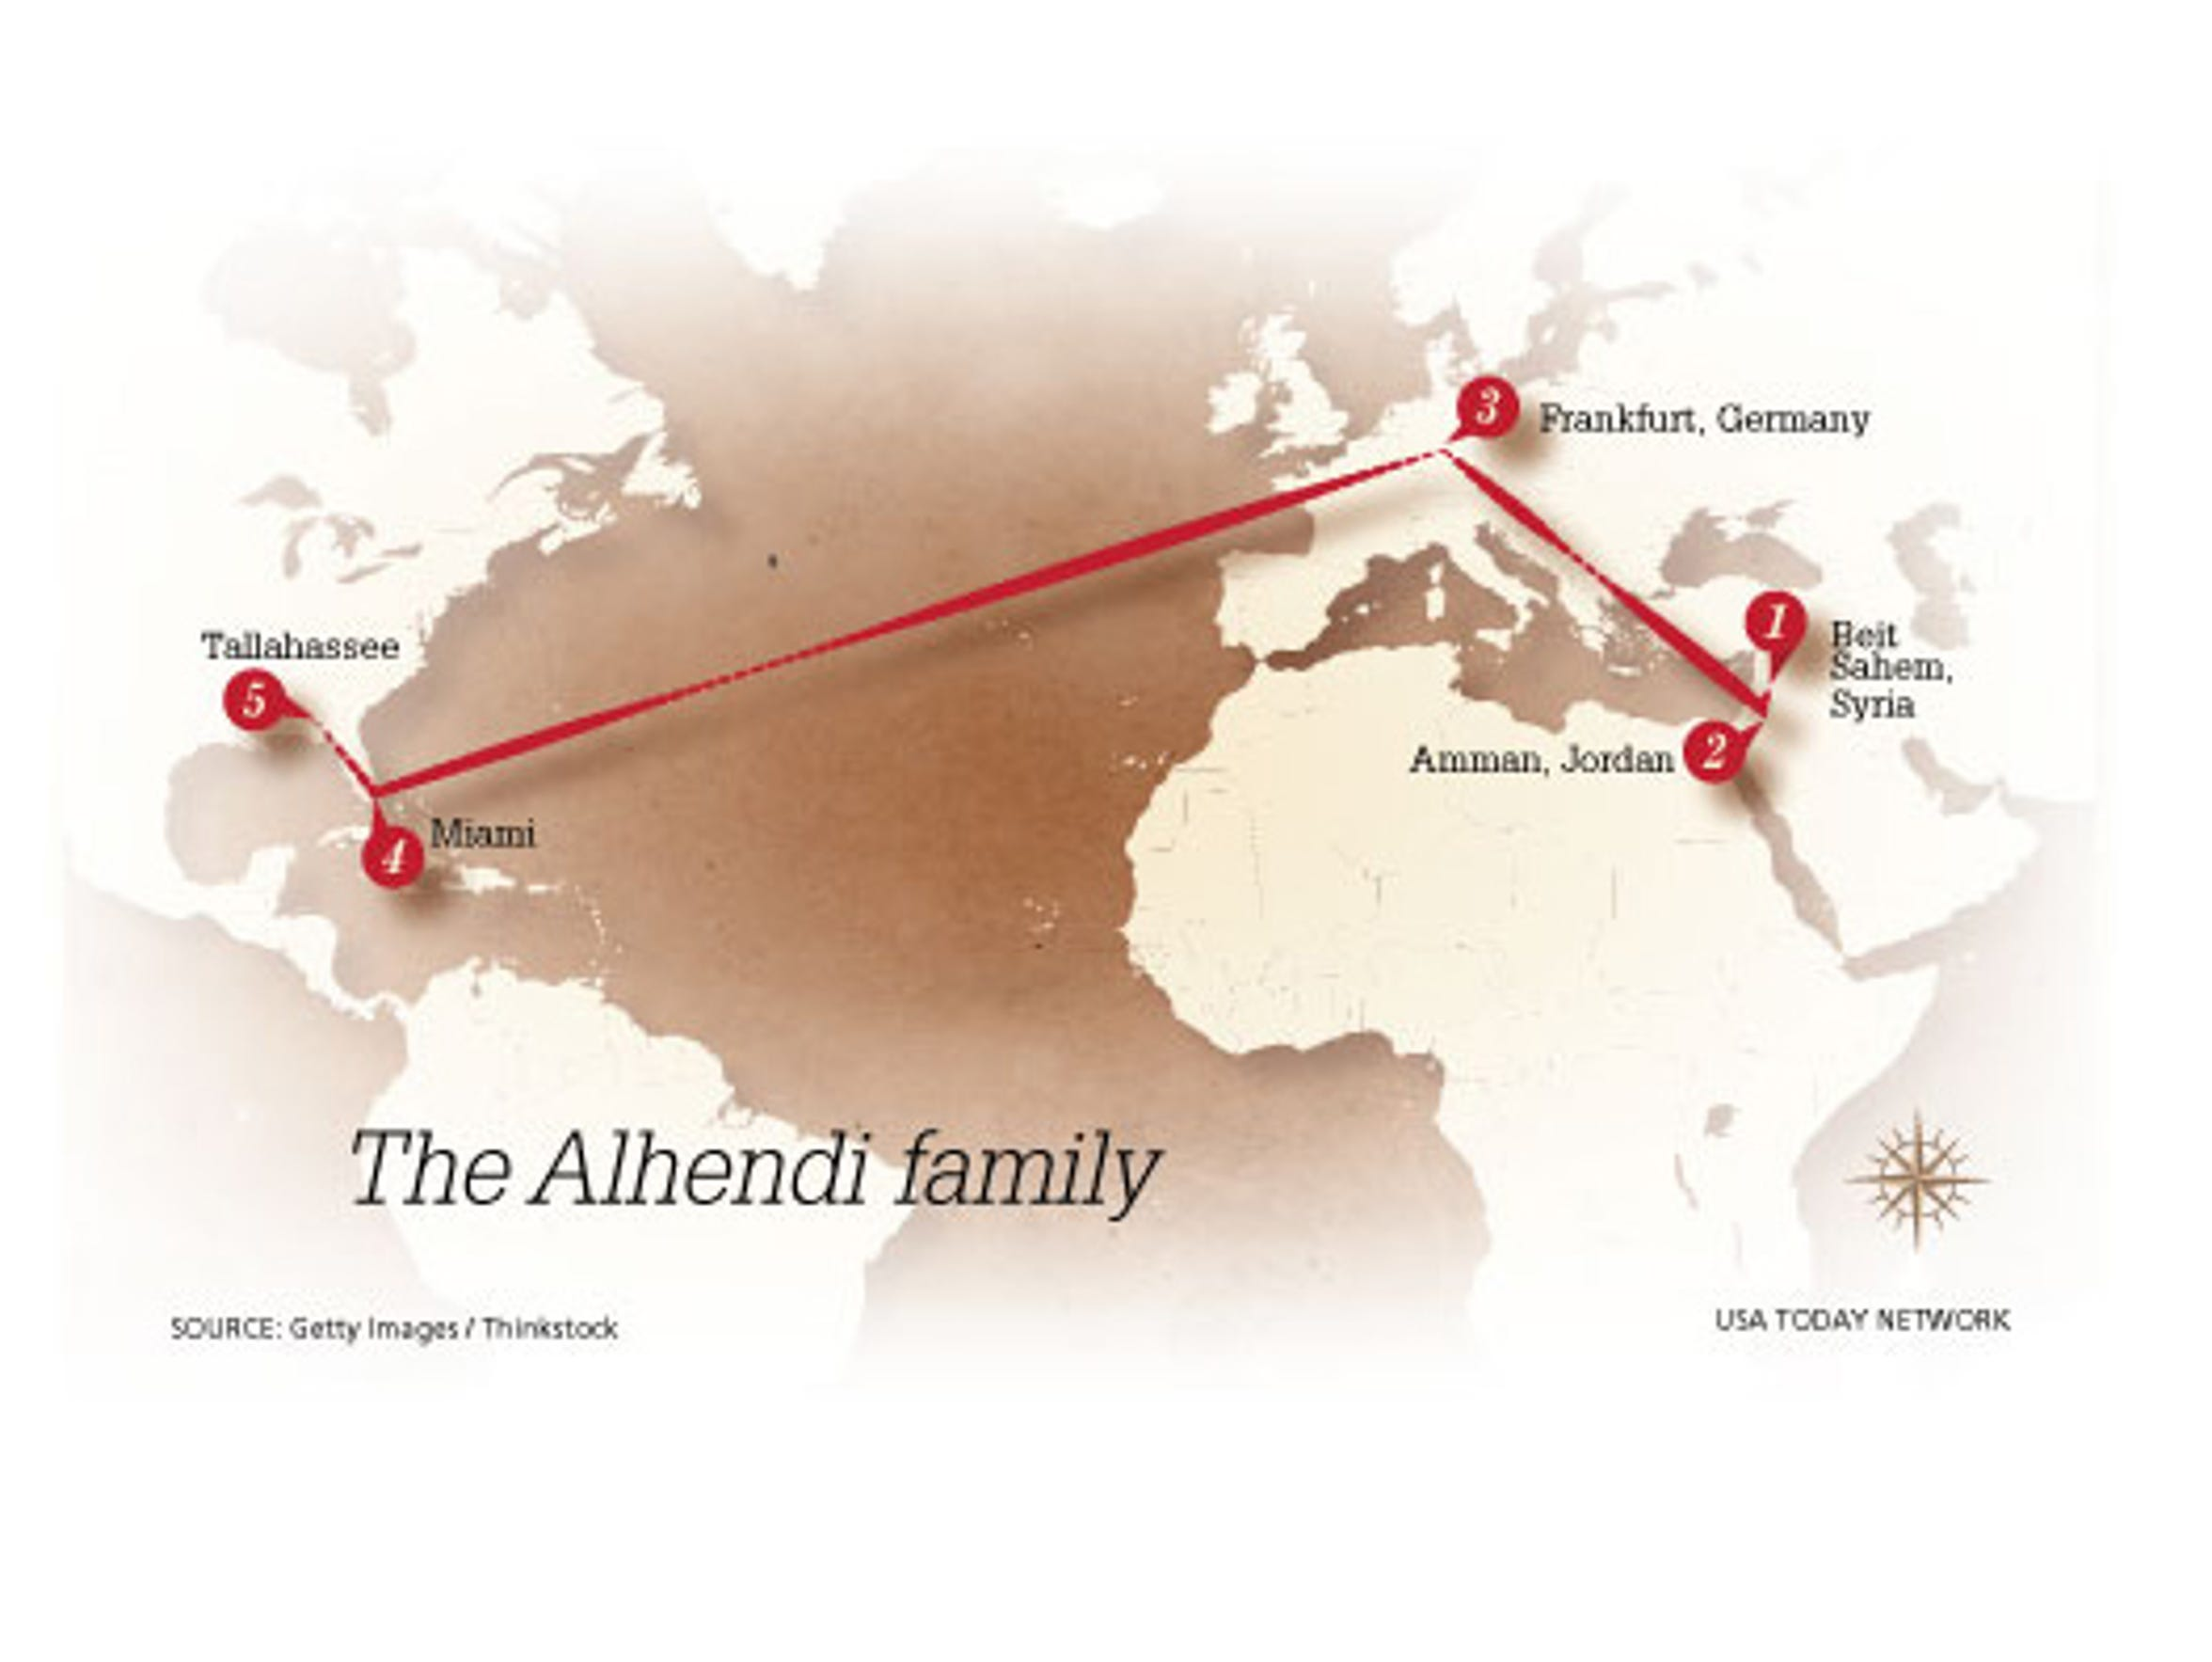 The journey of the Alhendi family from Syria to Tallahassee,